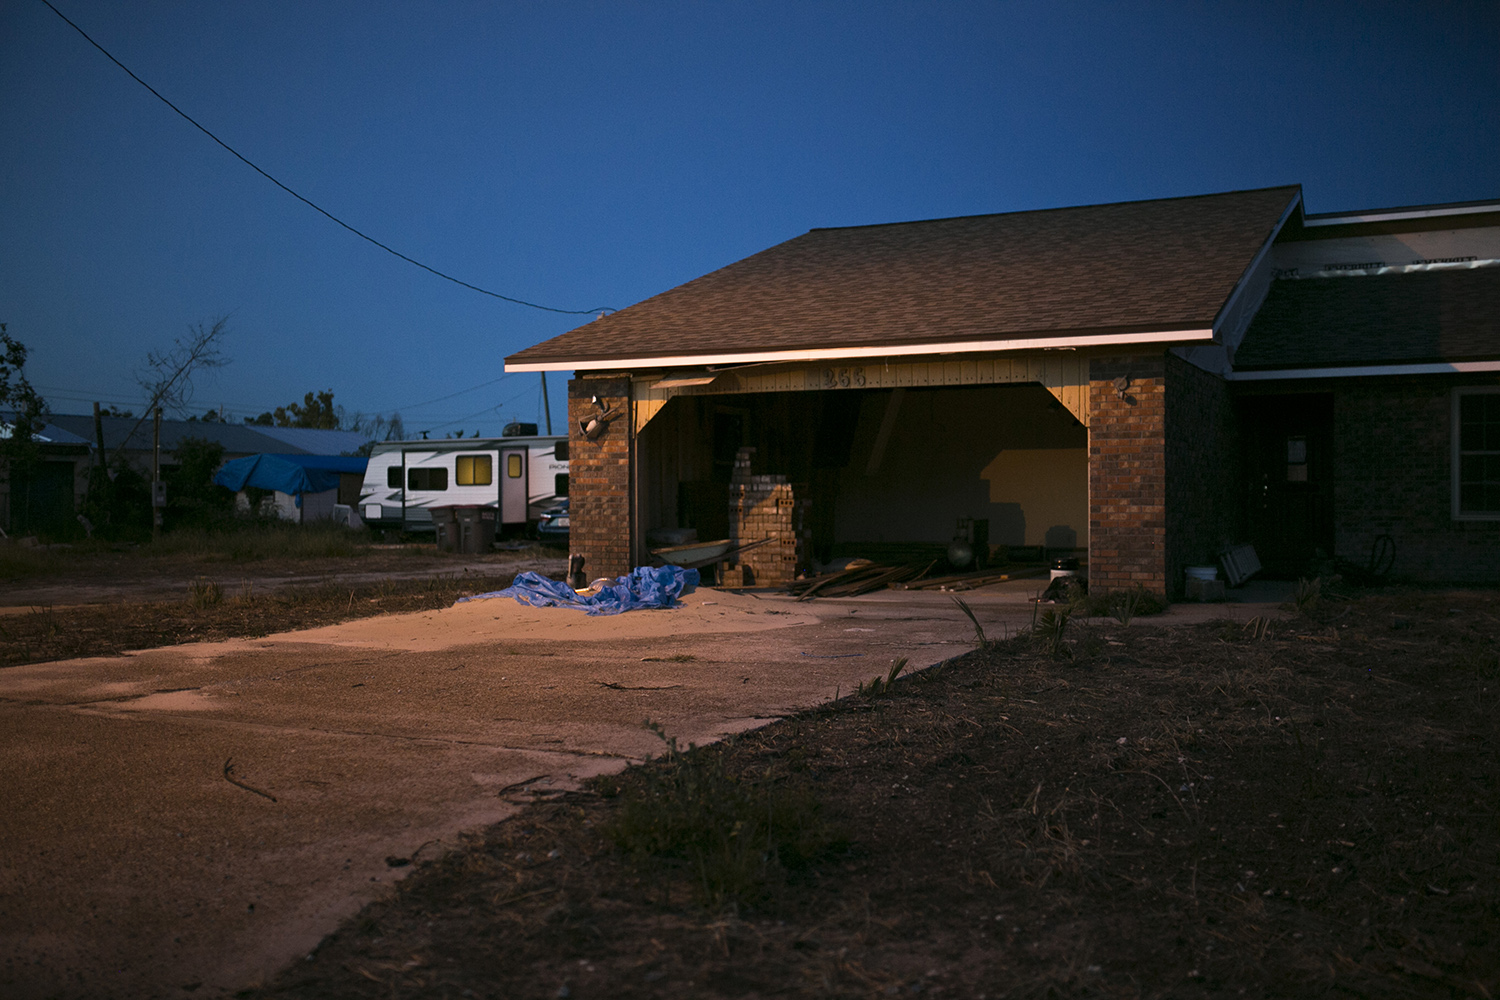 A house in Panama City, Fla., is seen nine months after Hurricane Michael. Many residents still live partly out of trailers in their yards and partly in their ravaged homes.